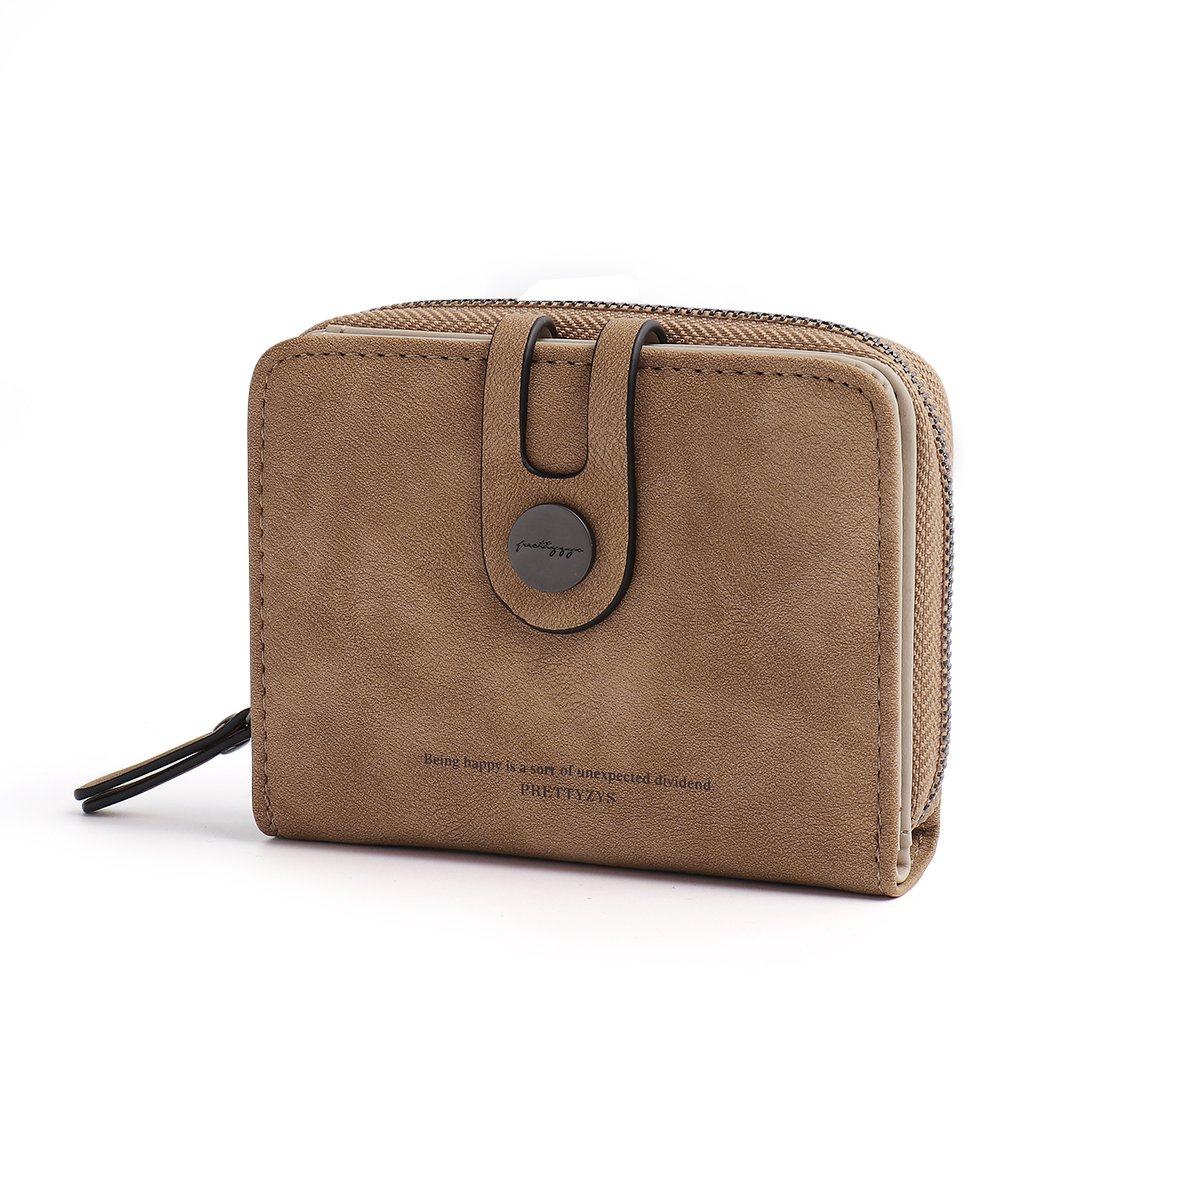 OURBAG Women's Mini Credit Card Case Wallet with ID Window and Card Holder Light Brown Medium